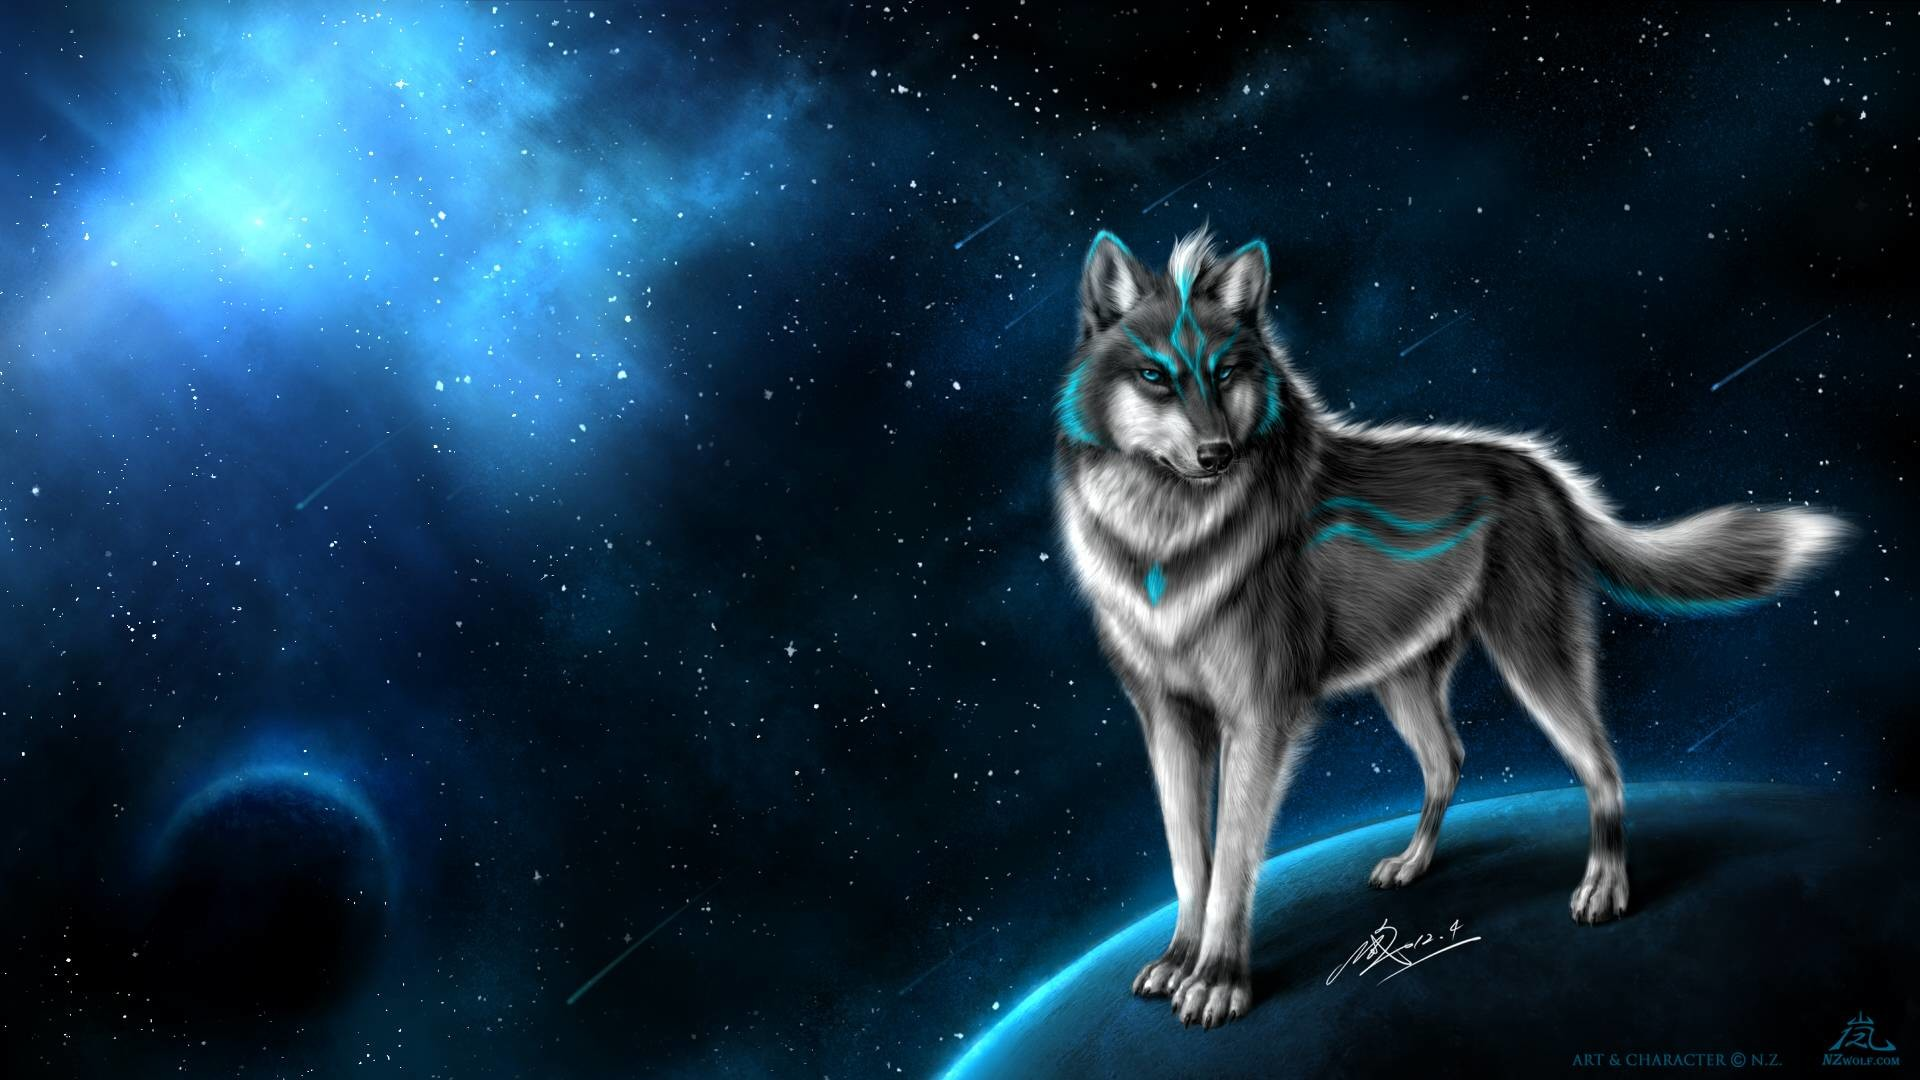 1920x1080 Wallpapers For > Fantasy Winged Wolf Wallpaper